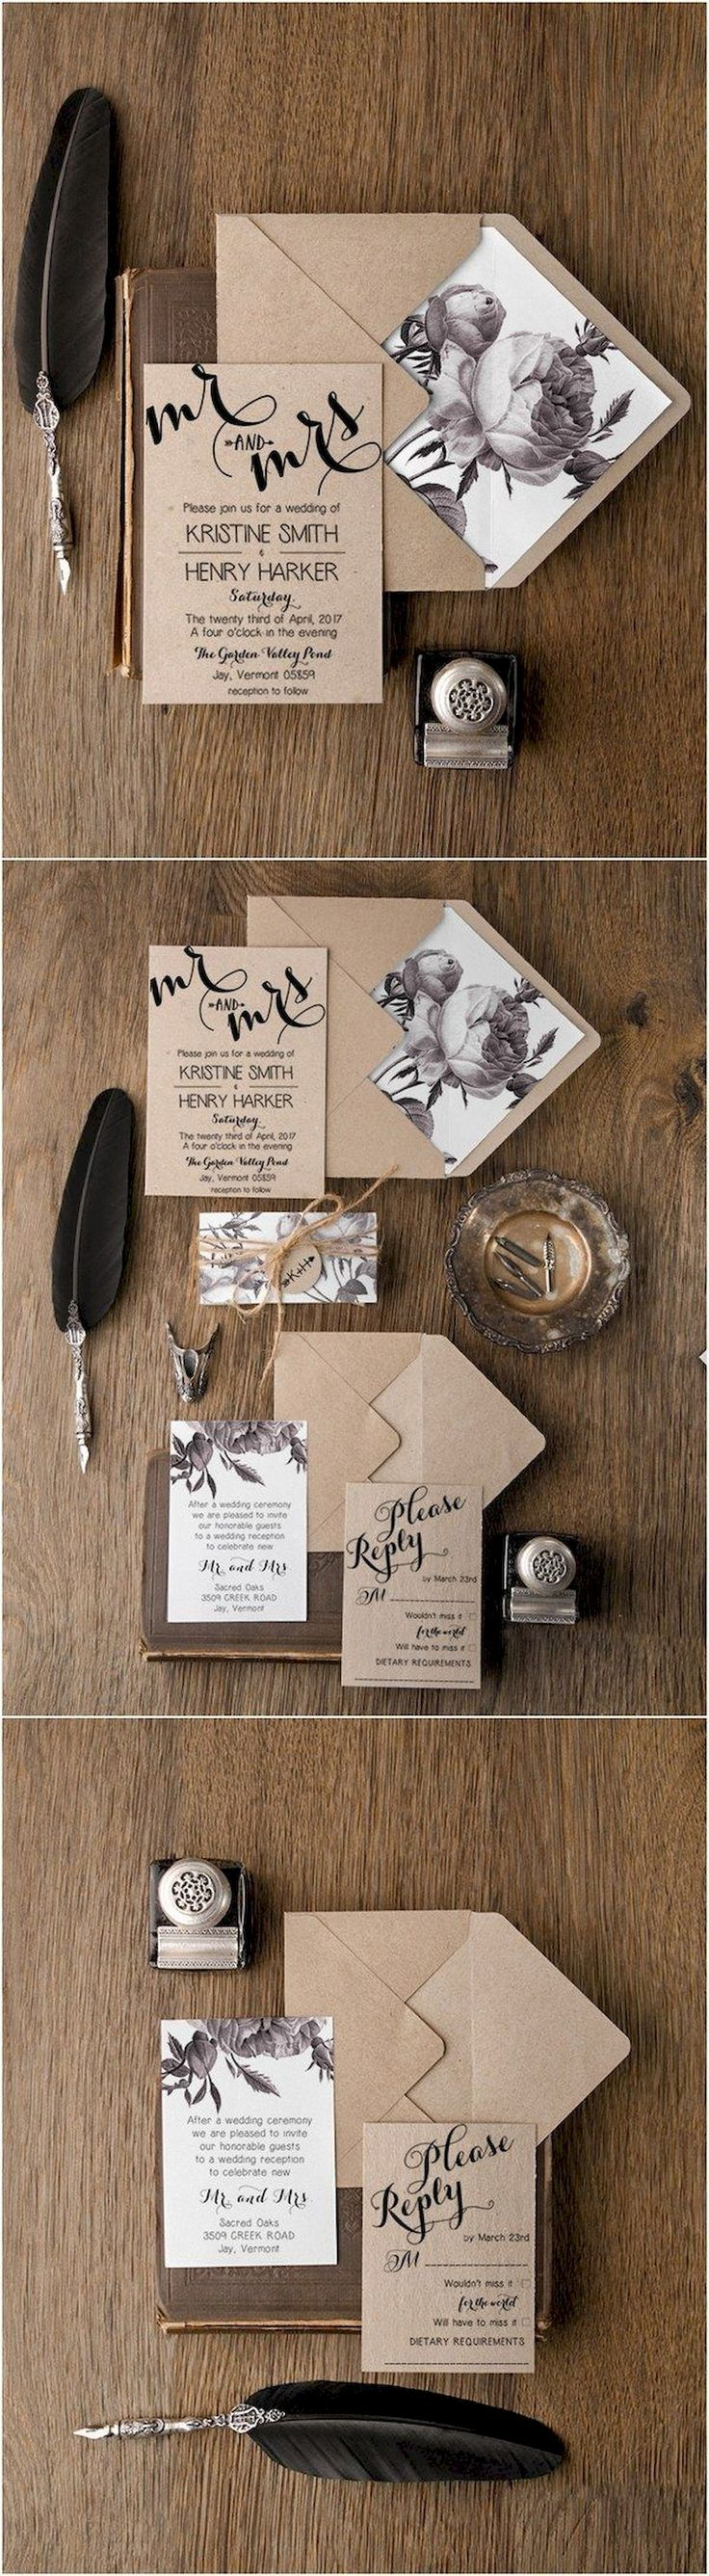 Cool 34 Beautiful Floral Wedding Invitation Ideas https://bitecloth.com/2017/07/18/34-beautiful-floral-wedding-invitation-ideas/